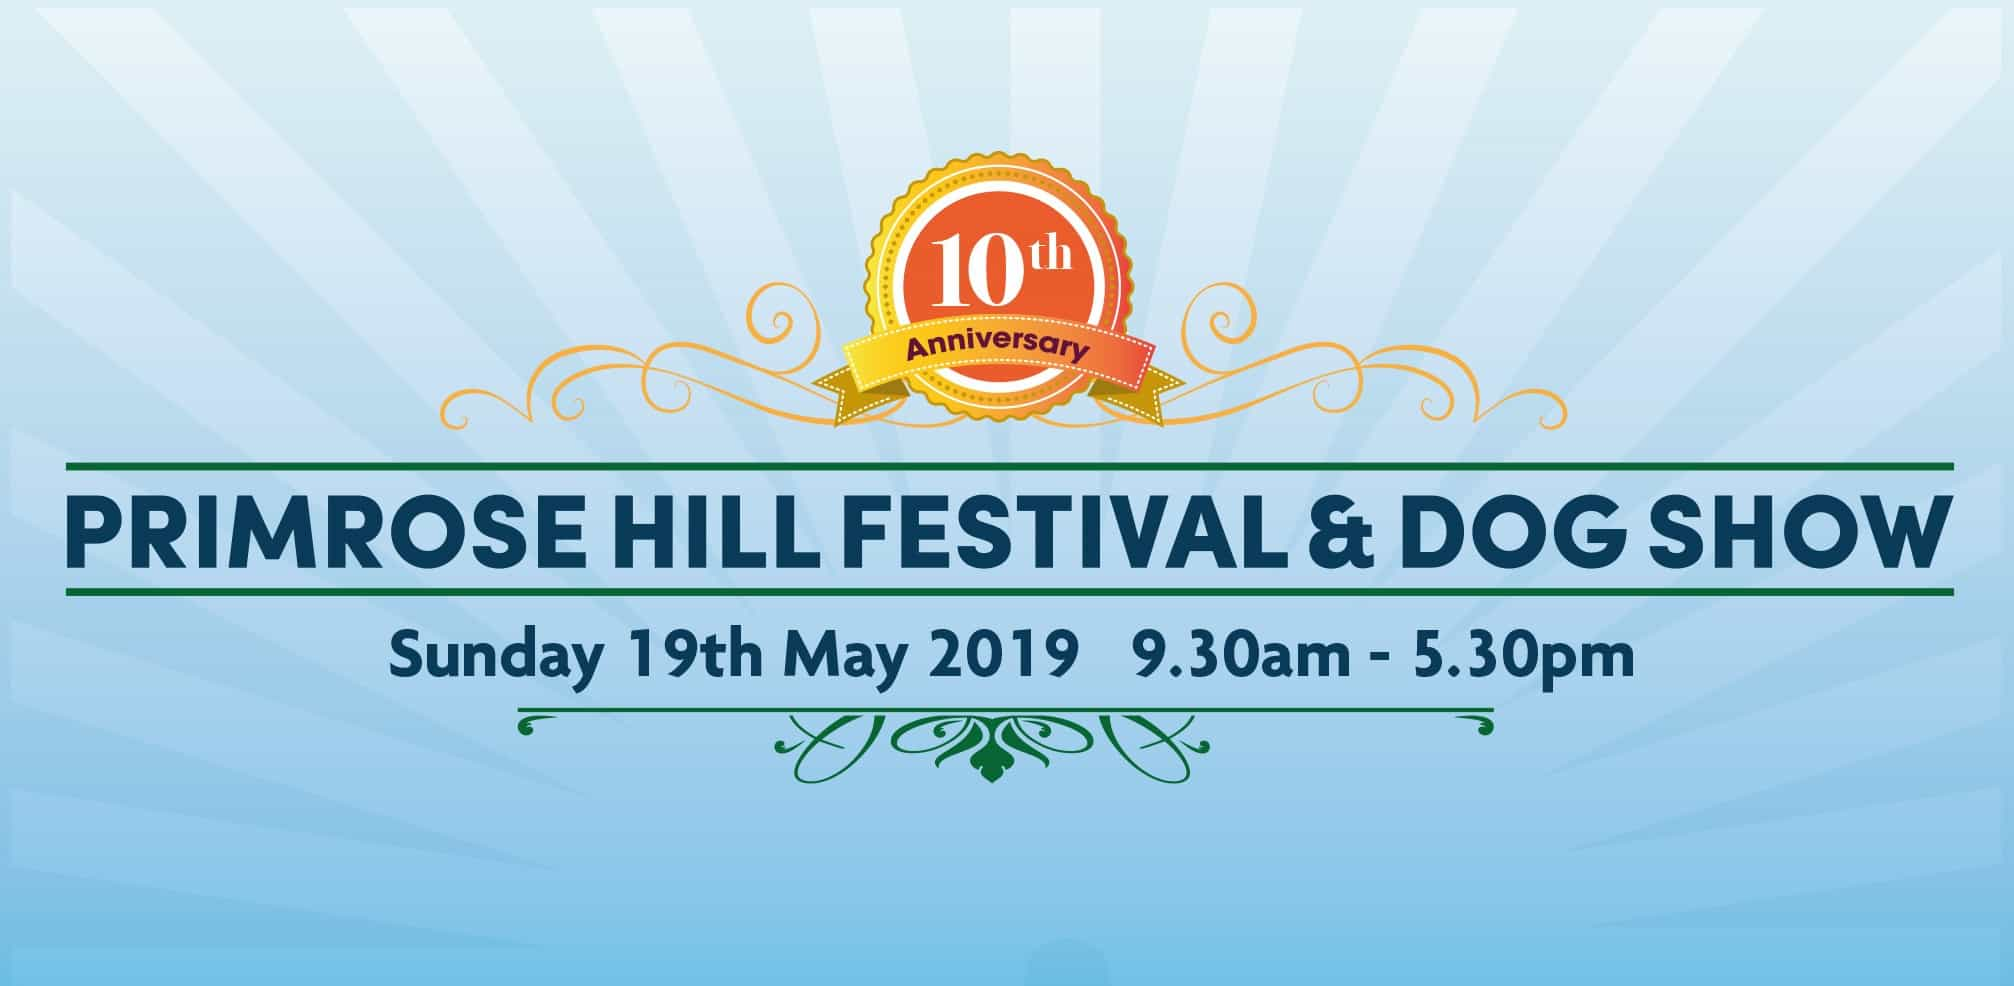 The Primrose Hill Festival and Dog Show 2019